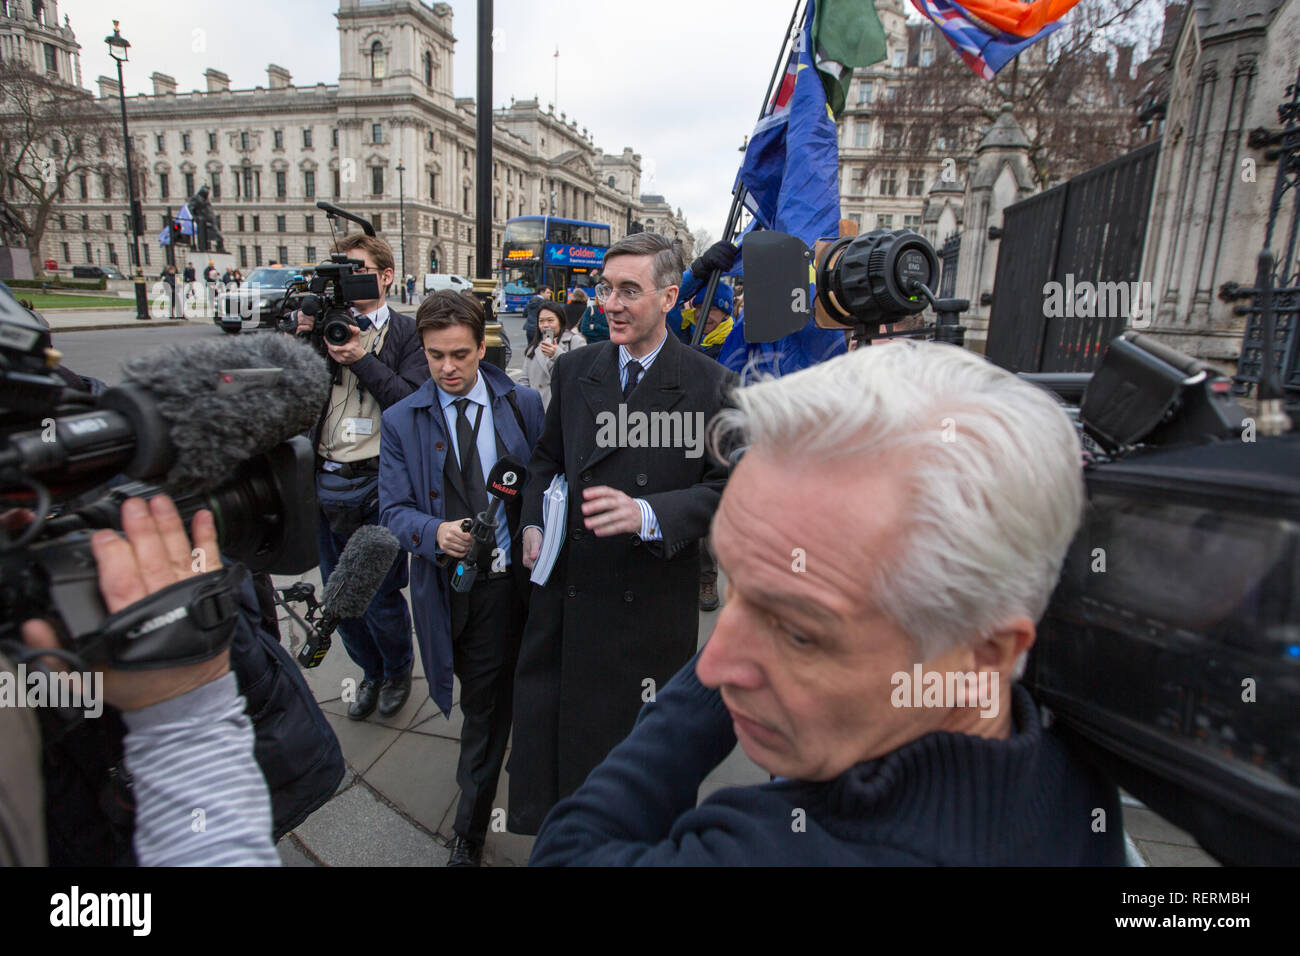 London, UK. 23rd Jan 2019. Jacob Rees-Mogg Brexiteer and MP for North East Somerset walks into Parliament Credit: George Cracknell Wright/Alamy Live News - Stock Image